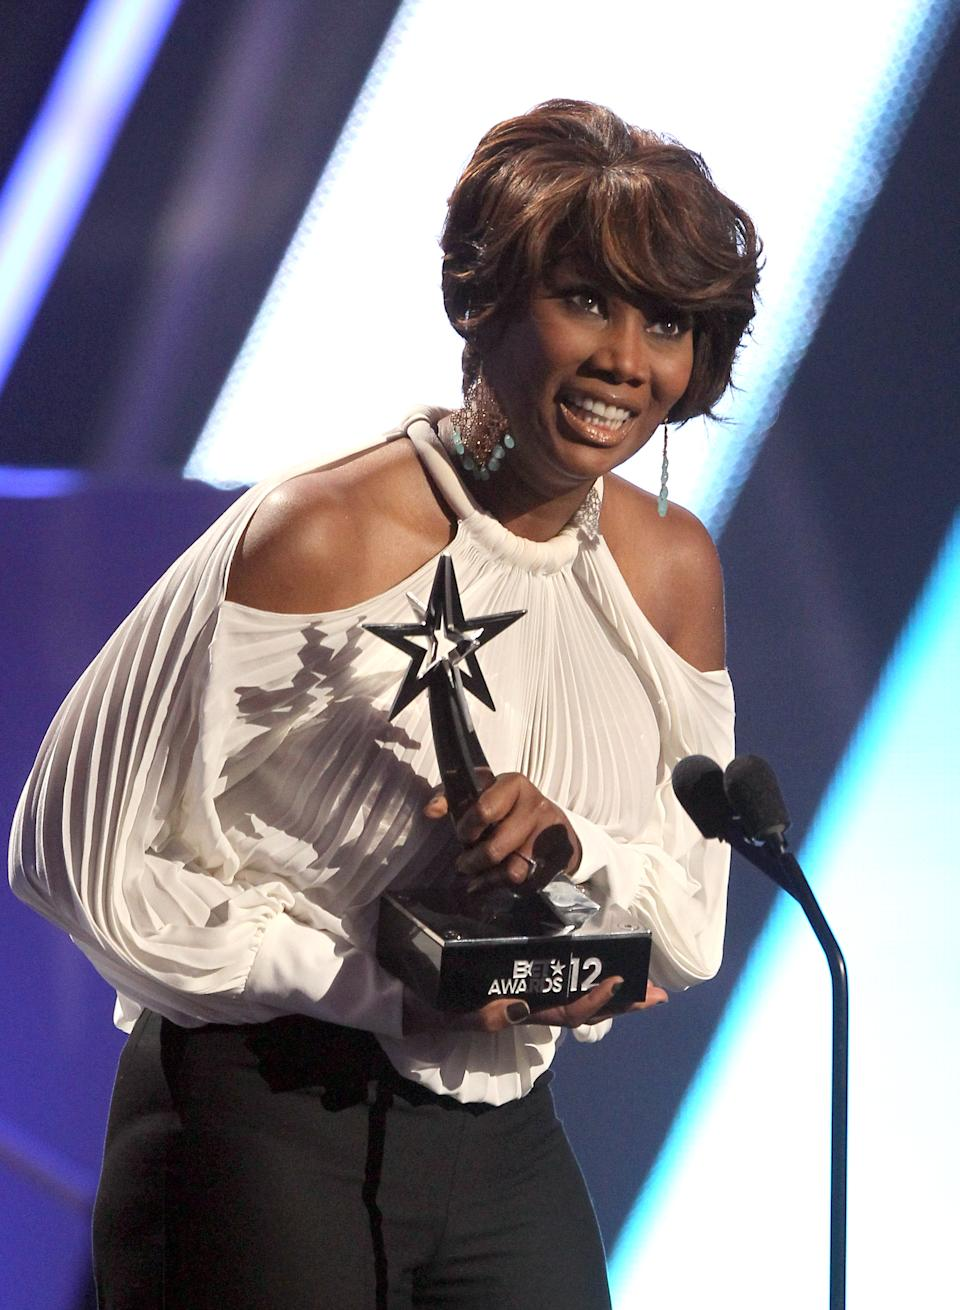 Yolanda Adams accepts the award for best gospel at the BET Awards on Sunday, July 1, 2012, in Los Angeles. (Photo by Matt Sayles/Invision/AP)